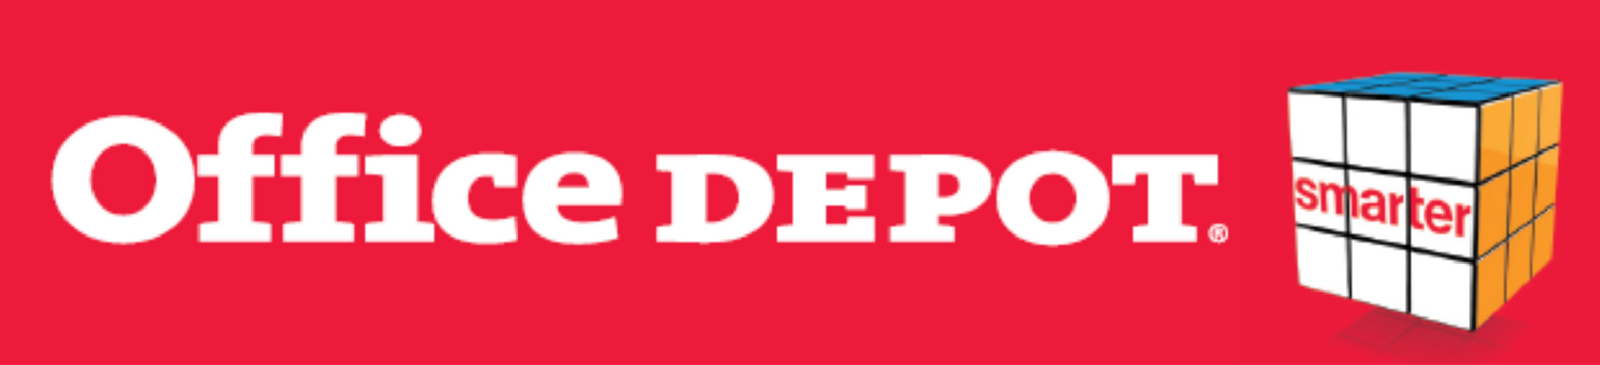 Super Savings: FREE Paper Shredding at Office Depot! Up to 5 pounds!